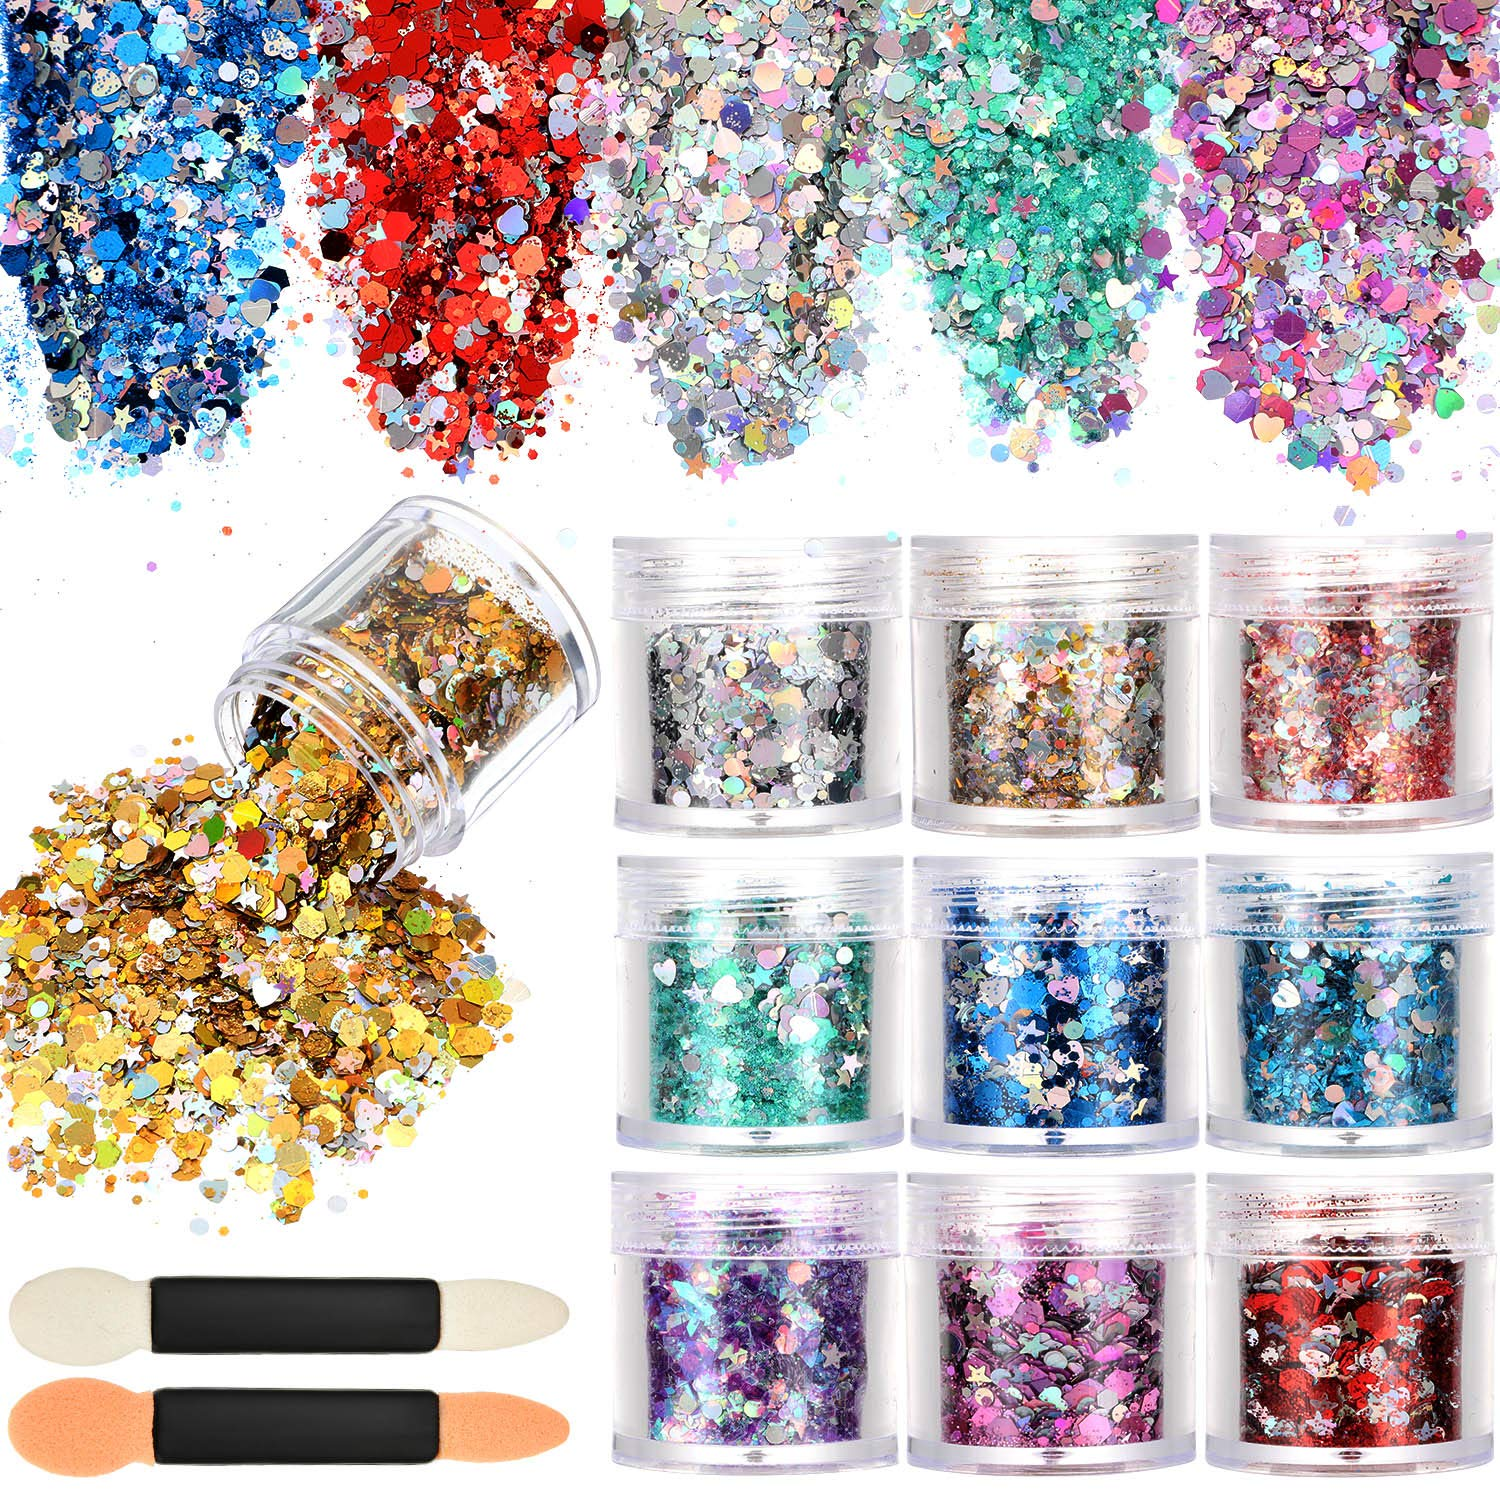 Tatuo 10 Boxes Nail Chunky Glitter Sequins Iridescent Flakes Cosmetic Paillette Ultra-thin Tips with 10 Pieces Eyeshadow Brushes for Face Body Hair Nails (Color Set 2)